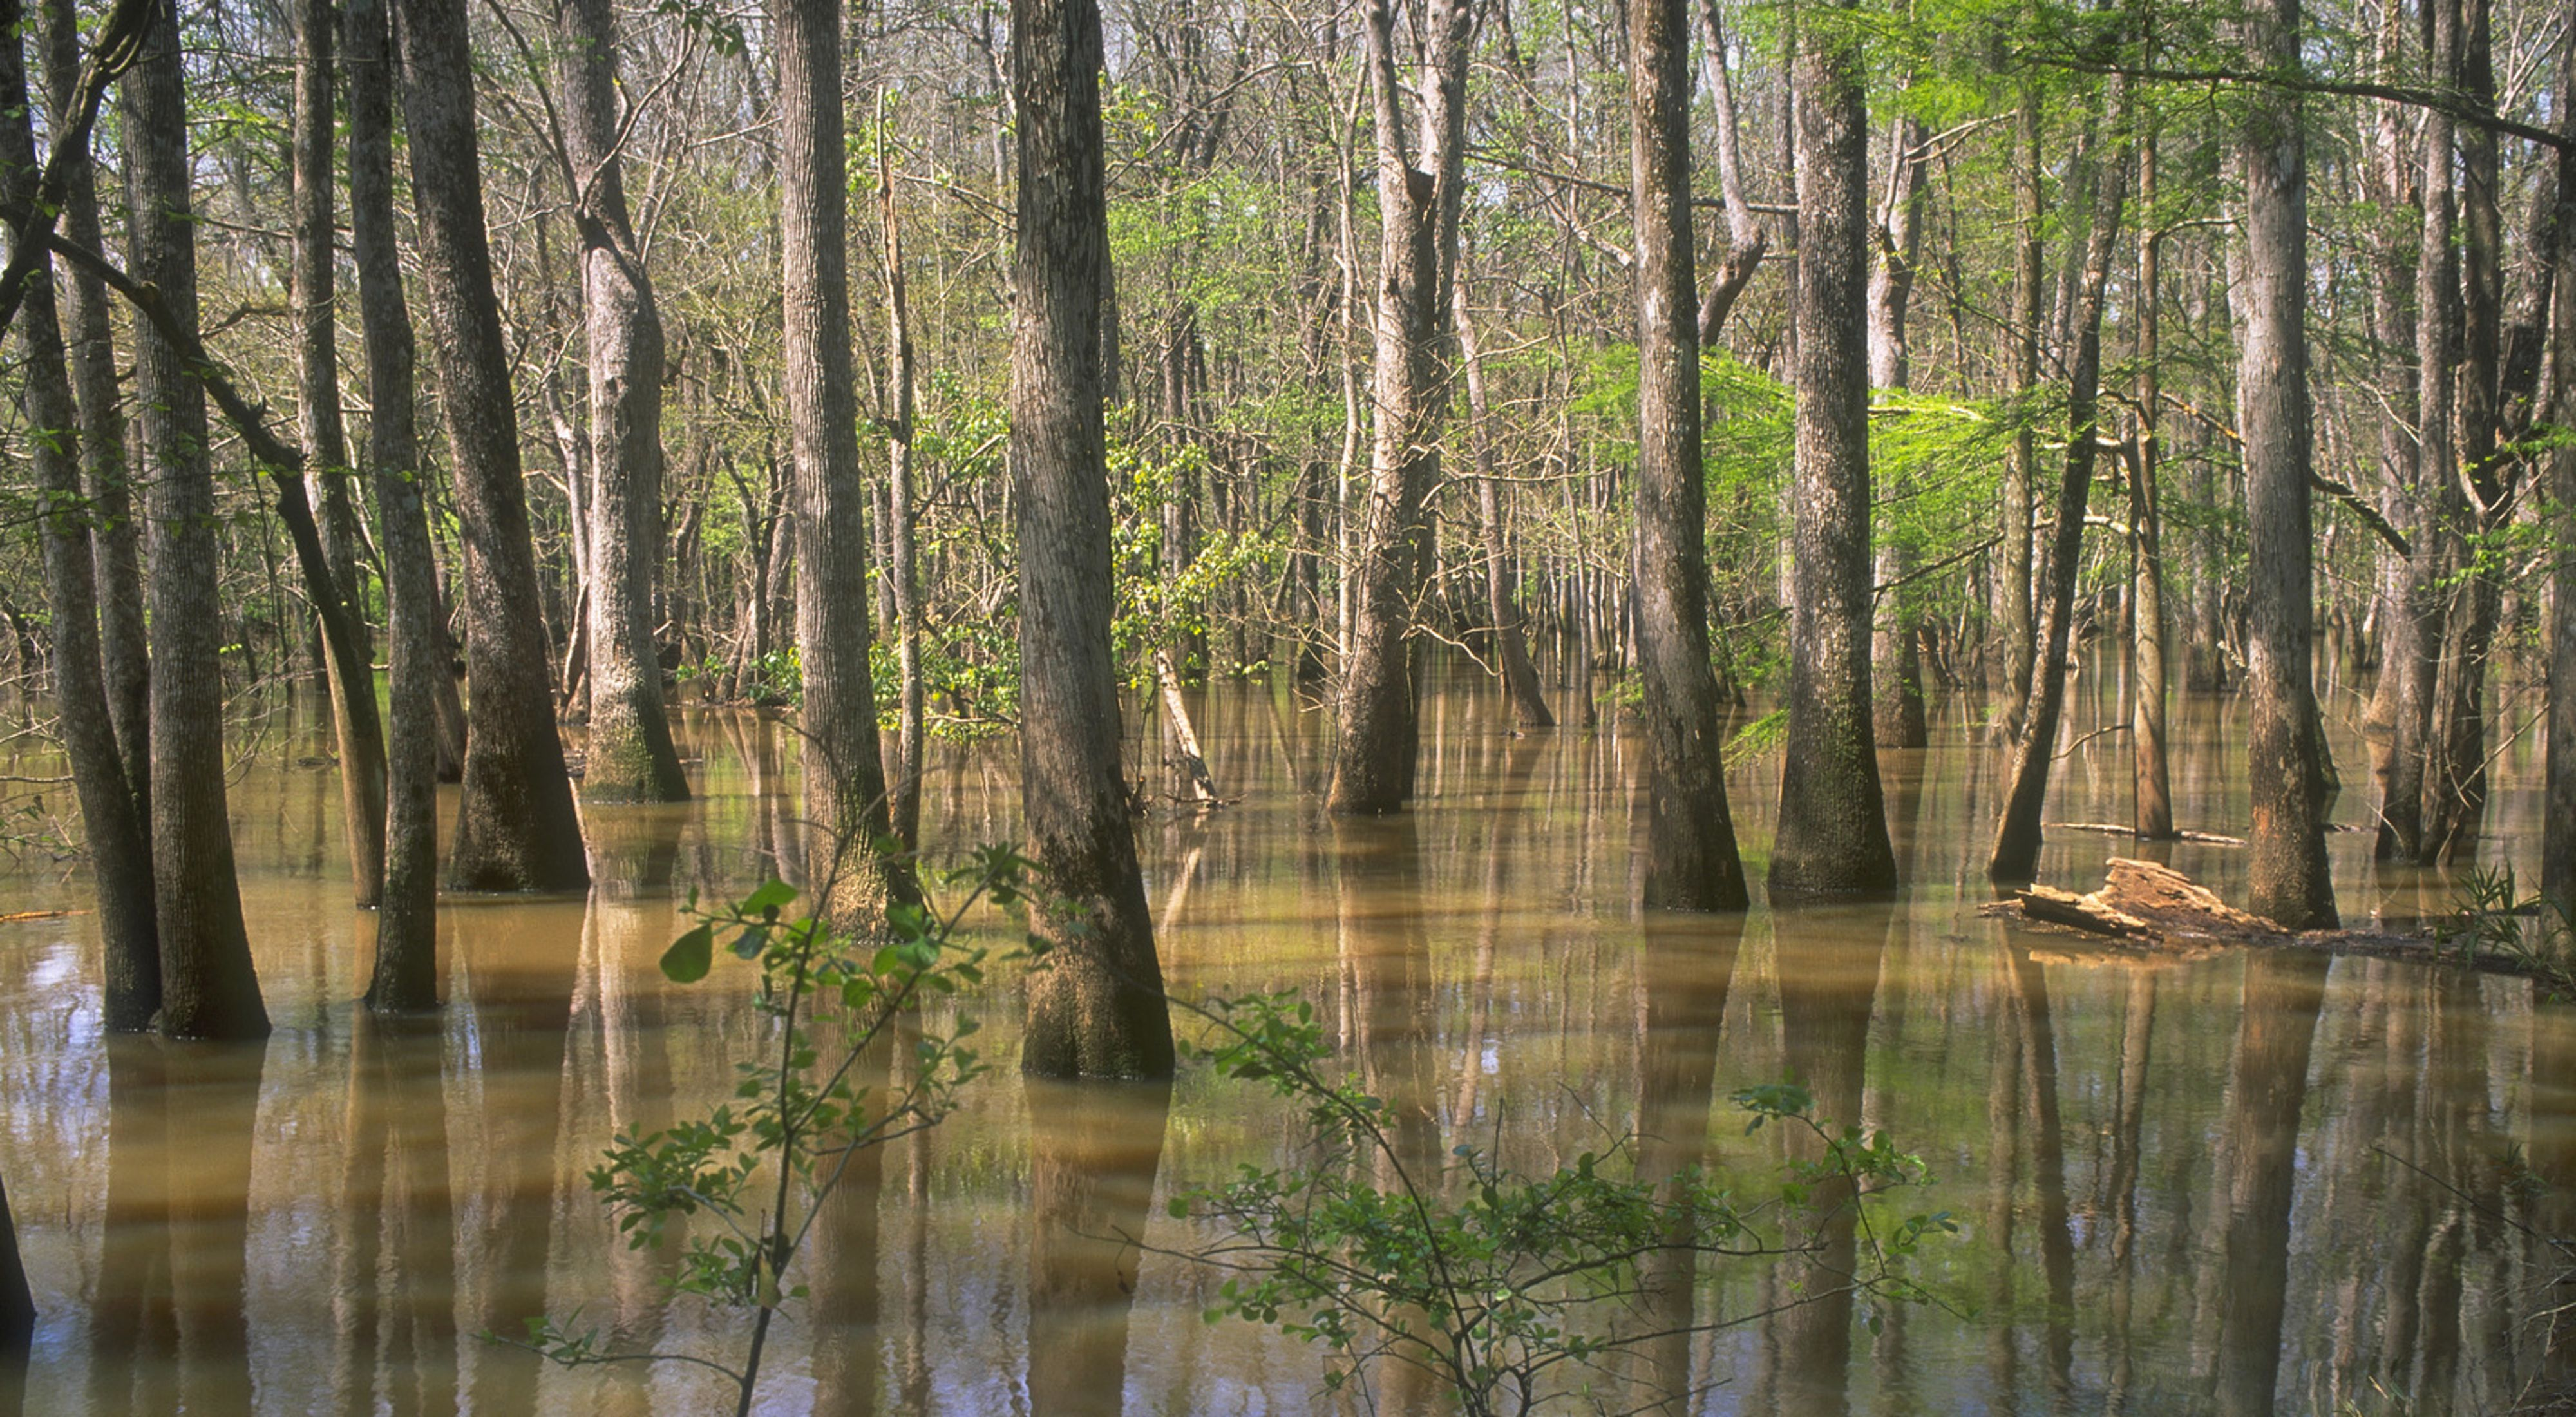 Water tupelo and bald cypress in Altamaha River, Georgia, United States, North America.